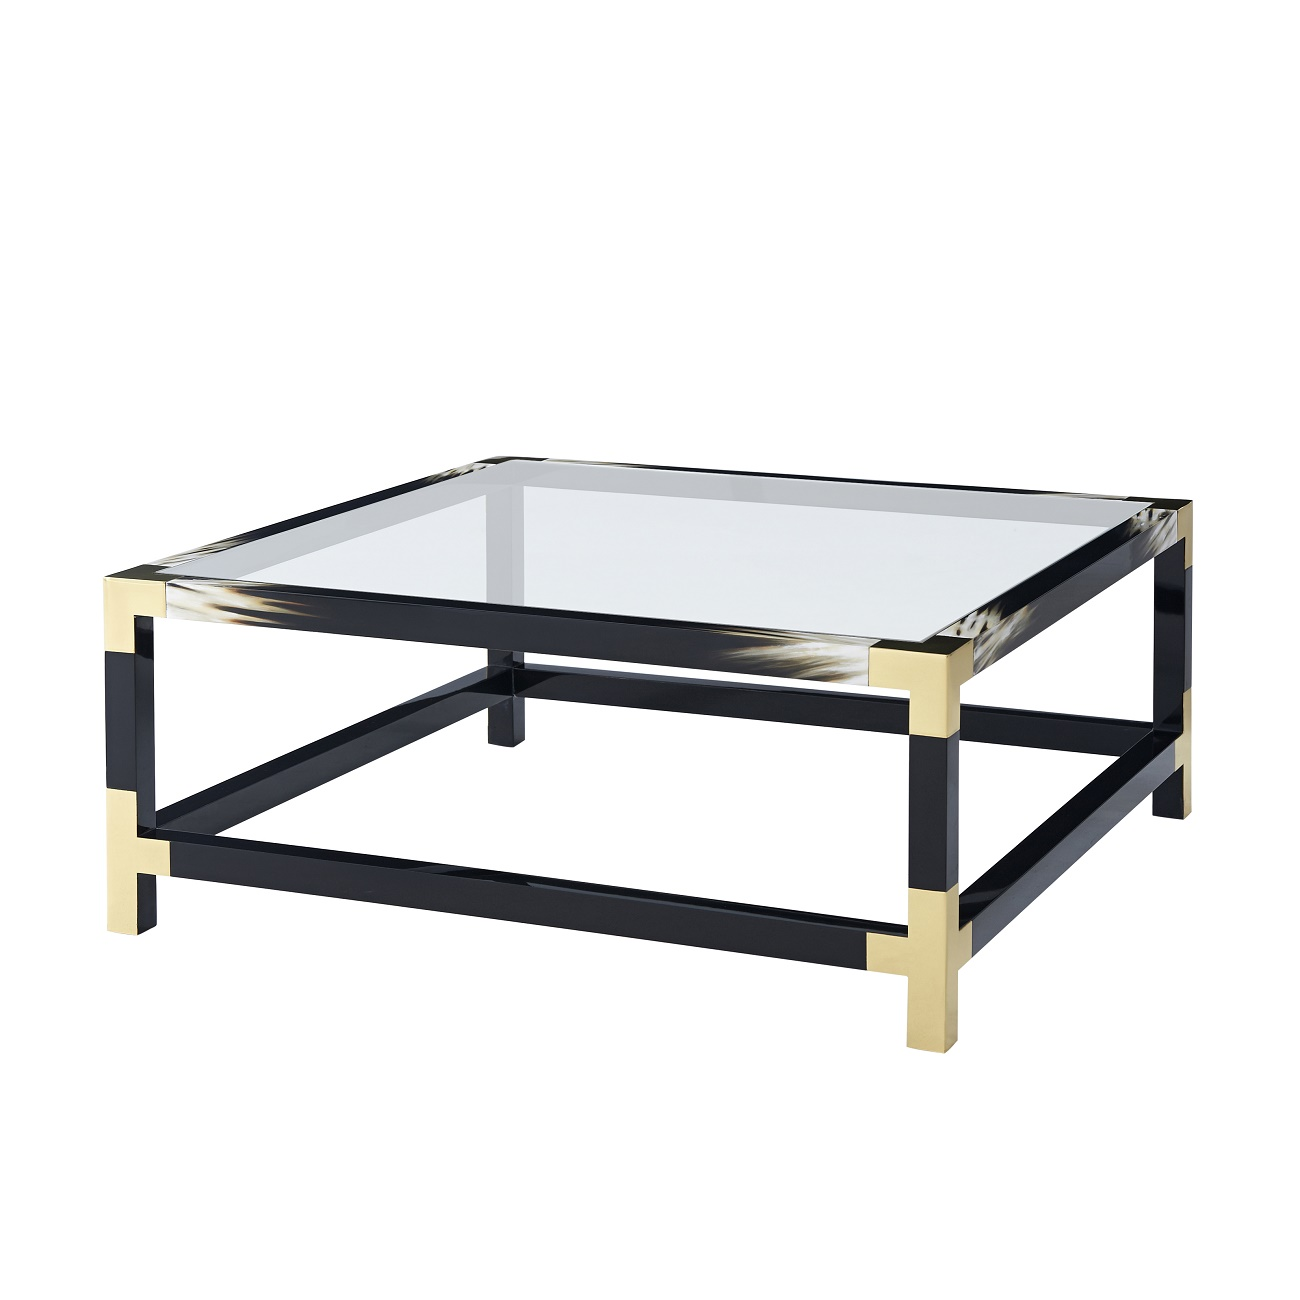 5102 065 Cutting Edge Squared Cocktail Table theodore alexander